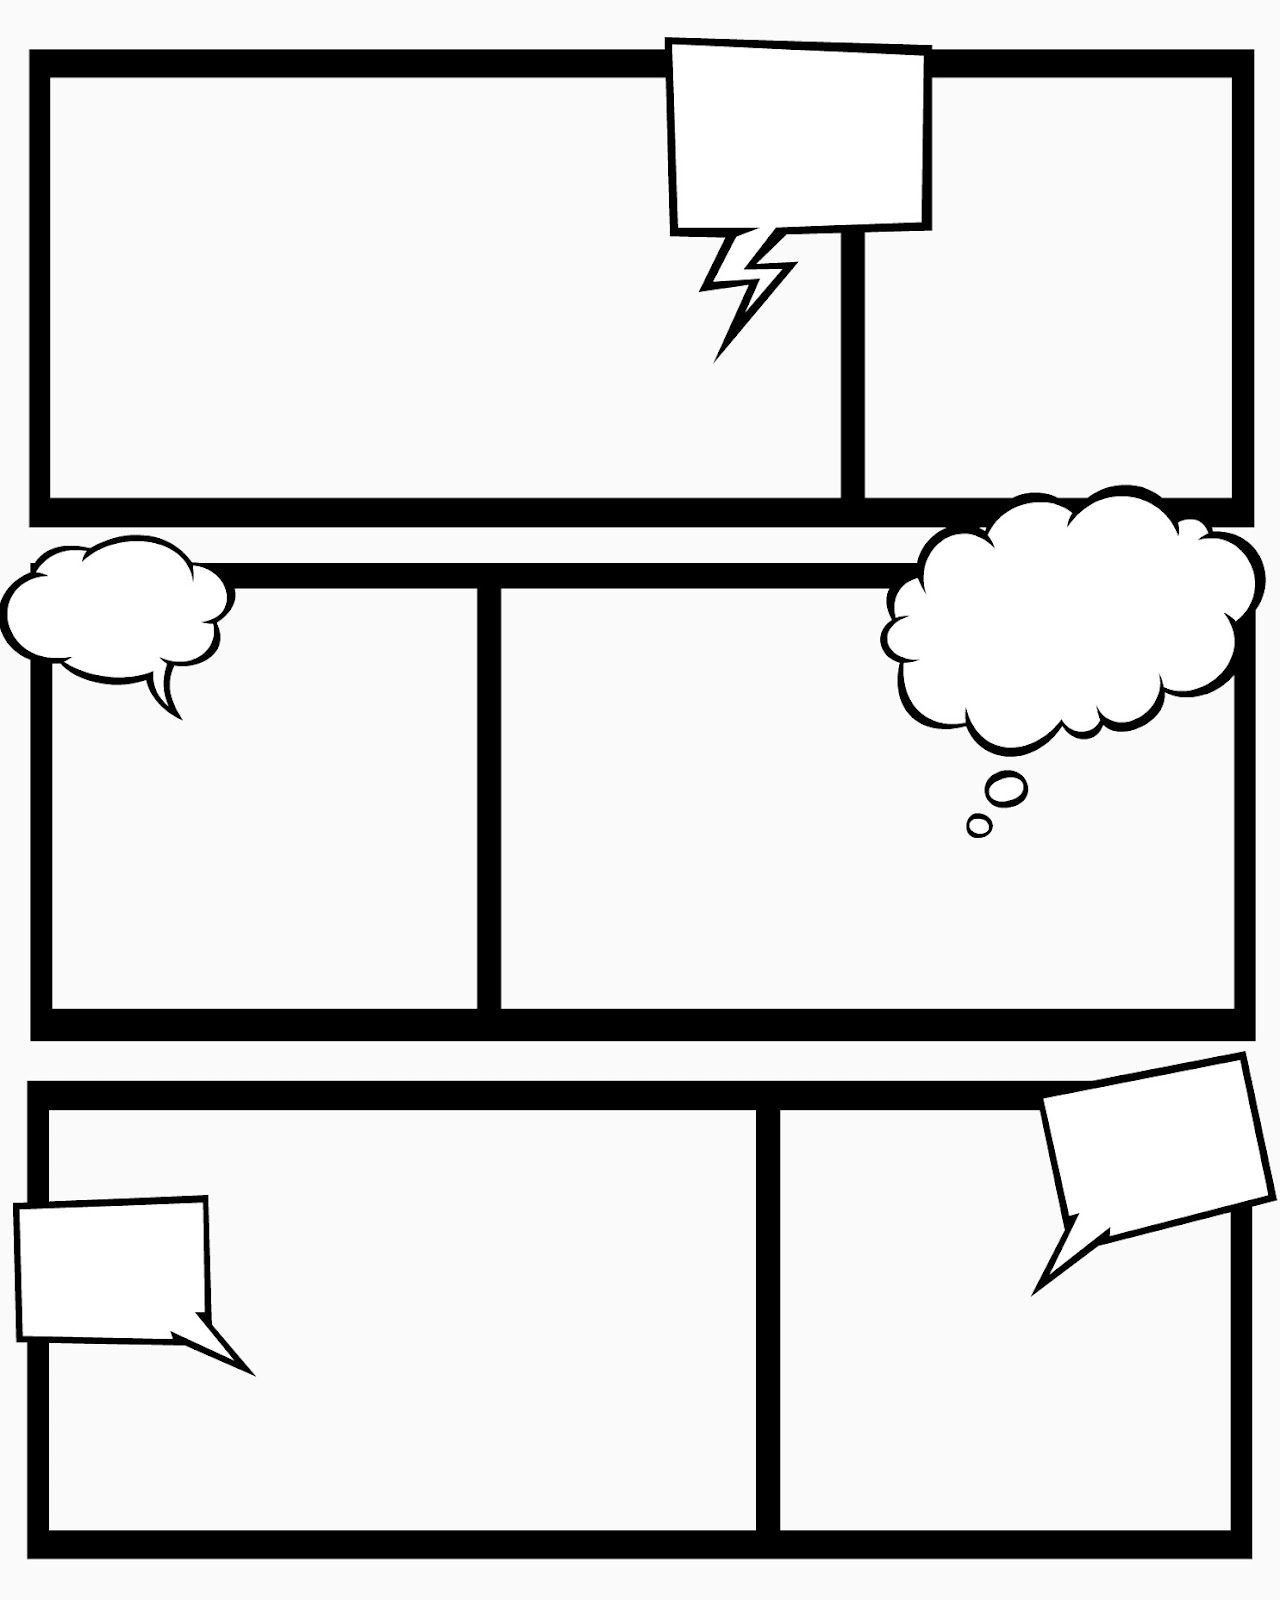 Sweet Hot Mess Free Printable Comic Book Templates  And This Within Printable Blank Comic Strip Template For Kids